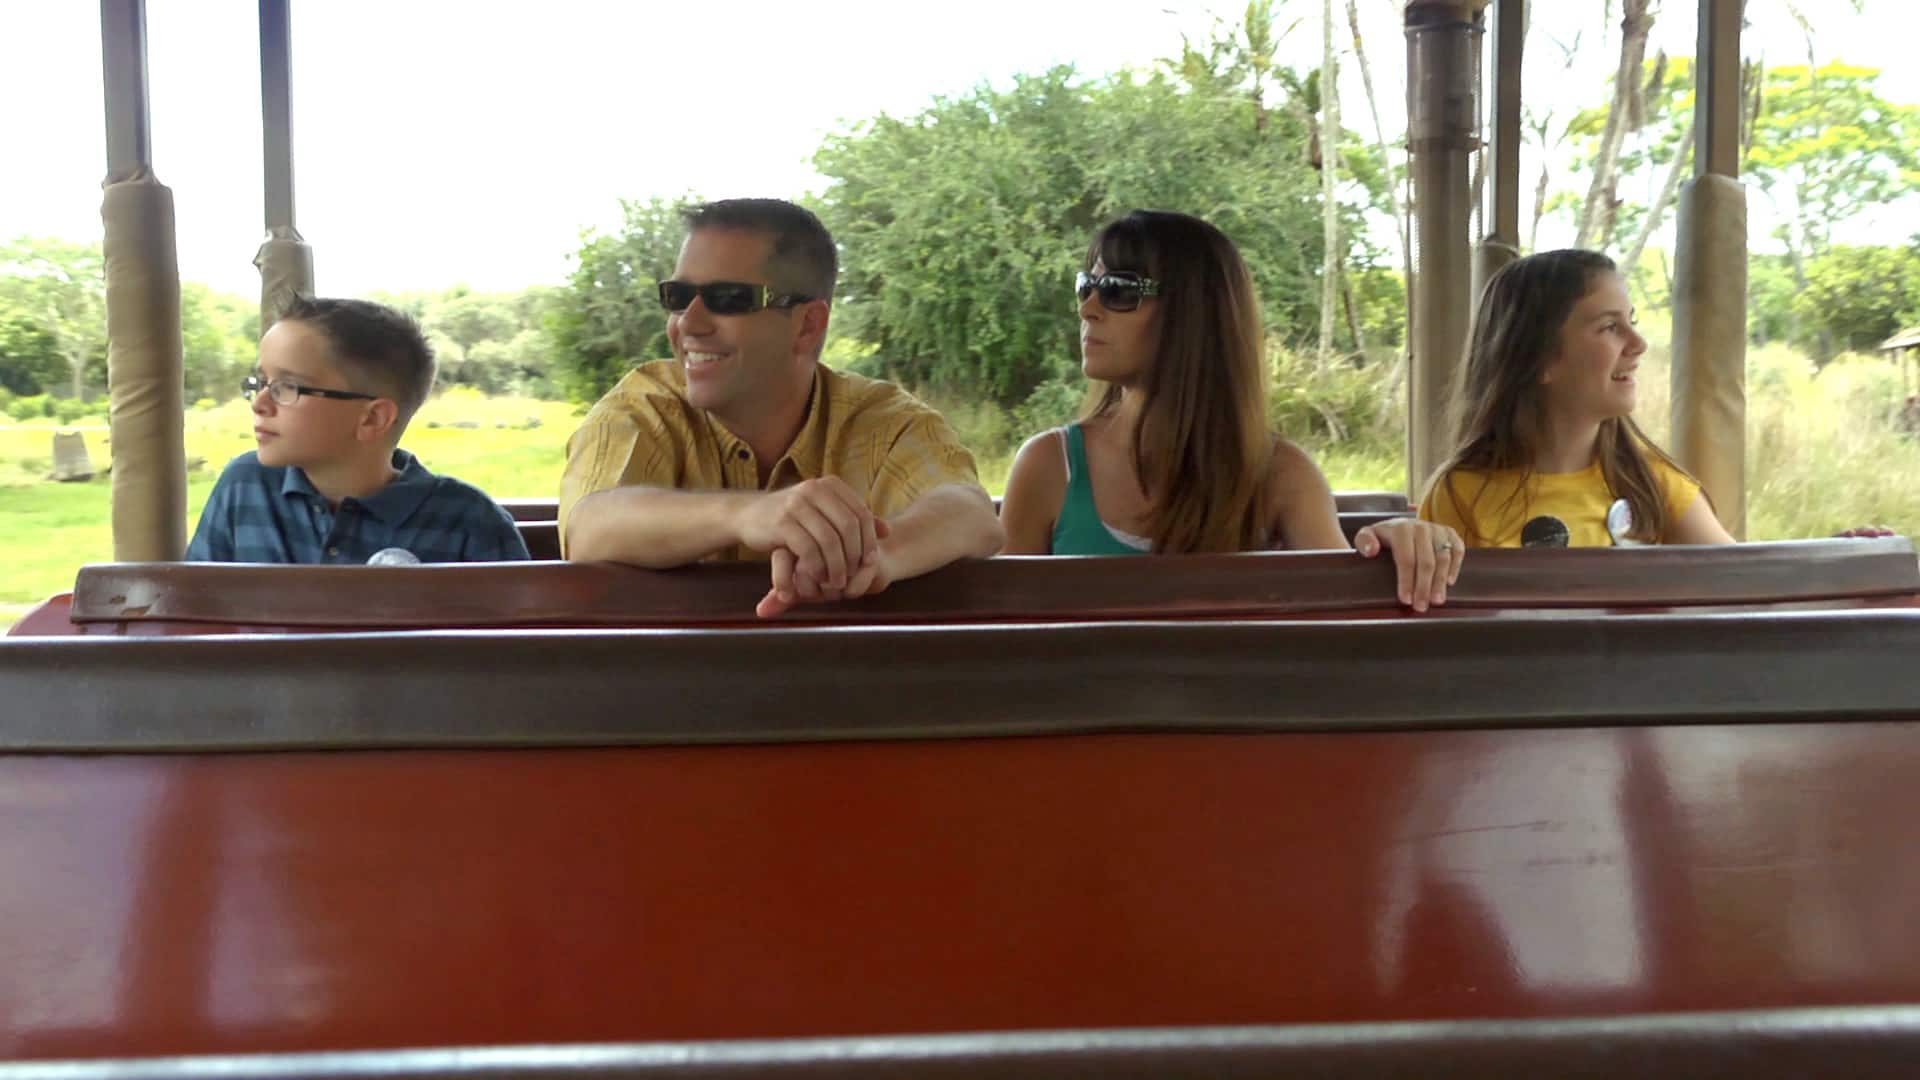 A family of 4 sits in the back row of an open air vehicle as they look out at a vast grassy area